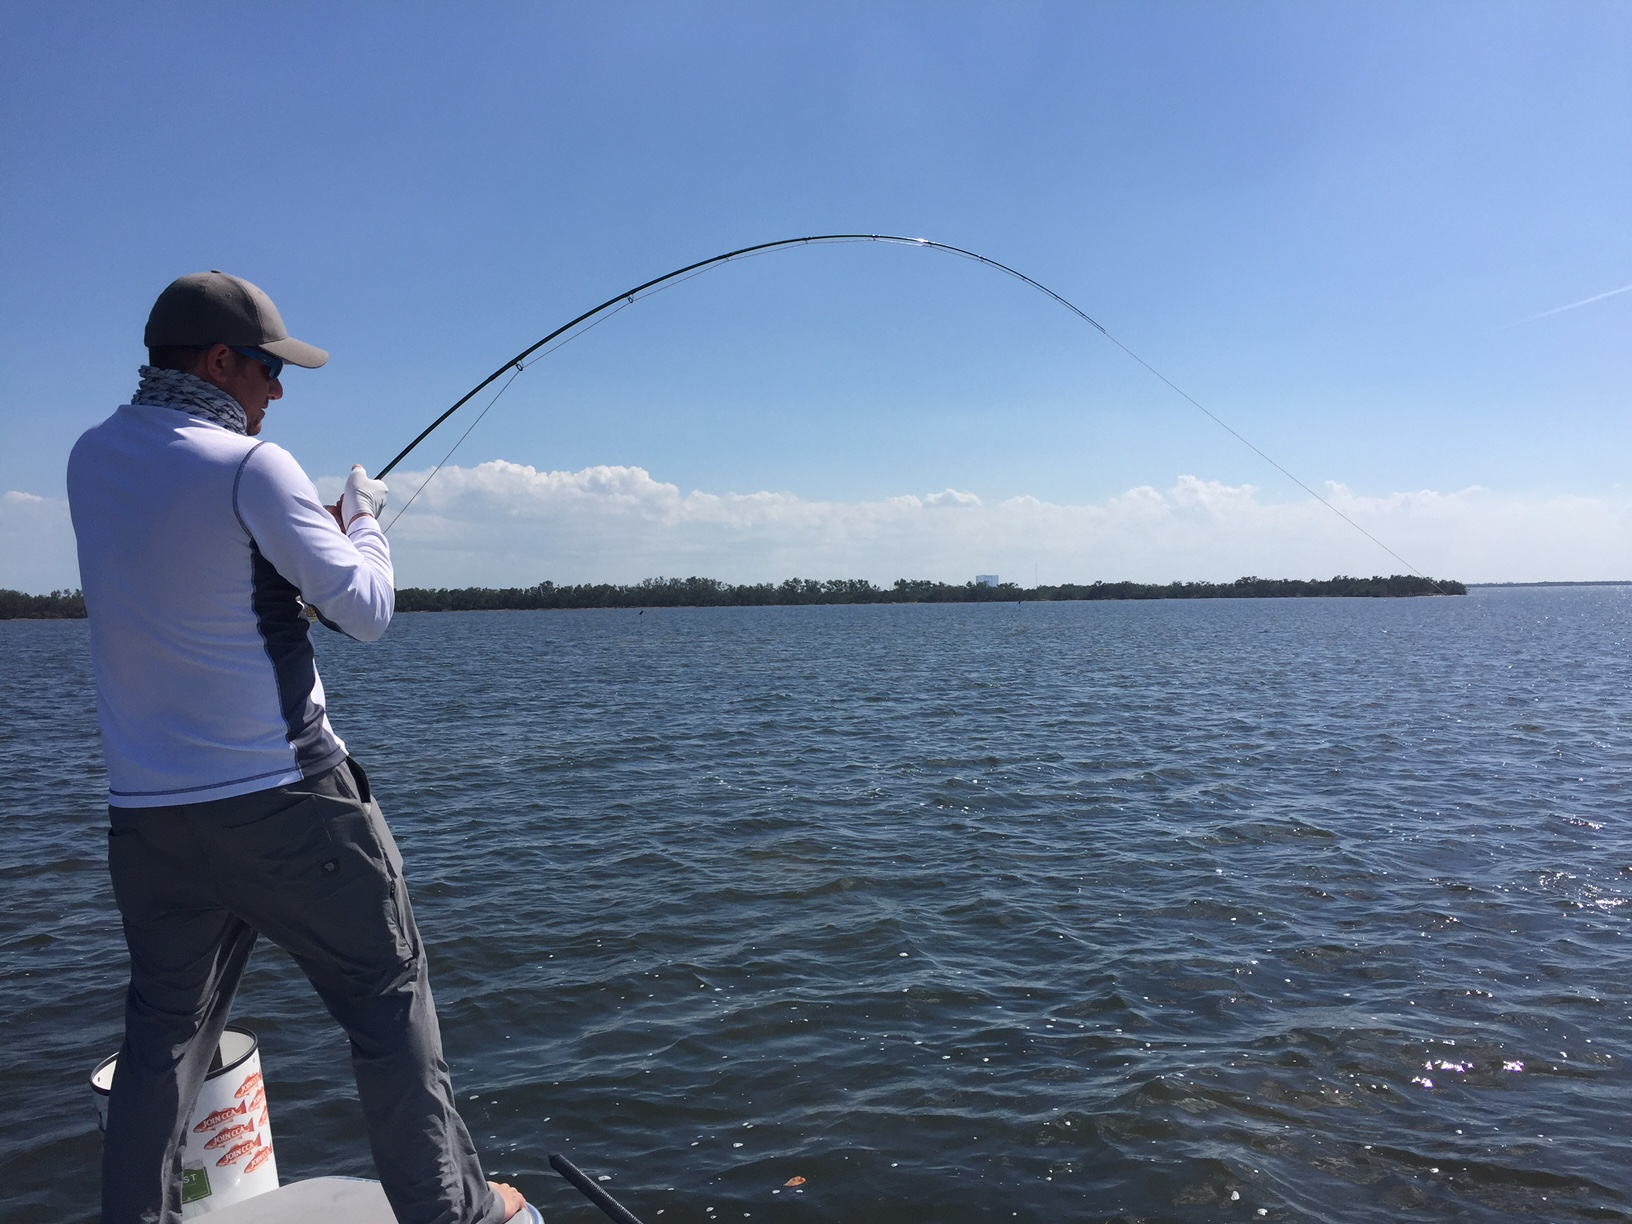 Fish on! Max Salzburg with a redfish on the line in Mosquito Lagoon near Titusville, Florida.